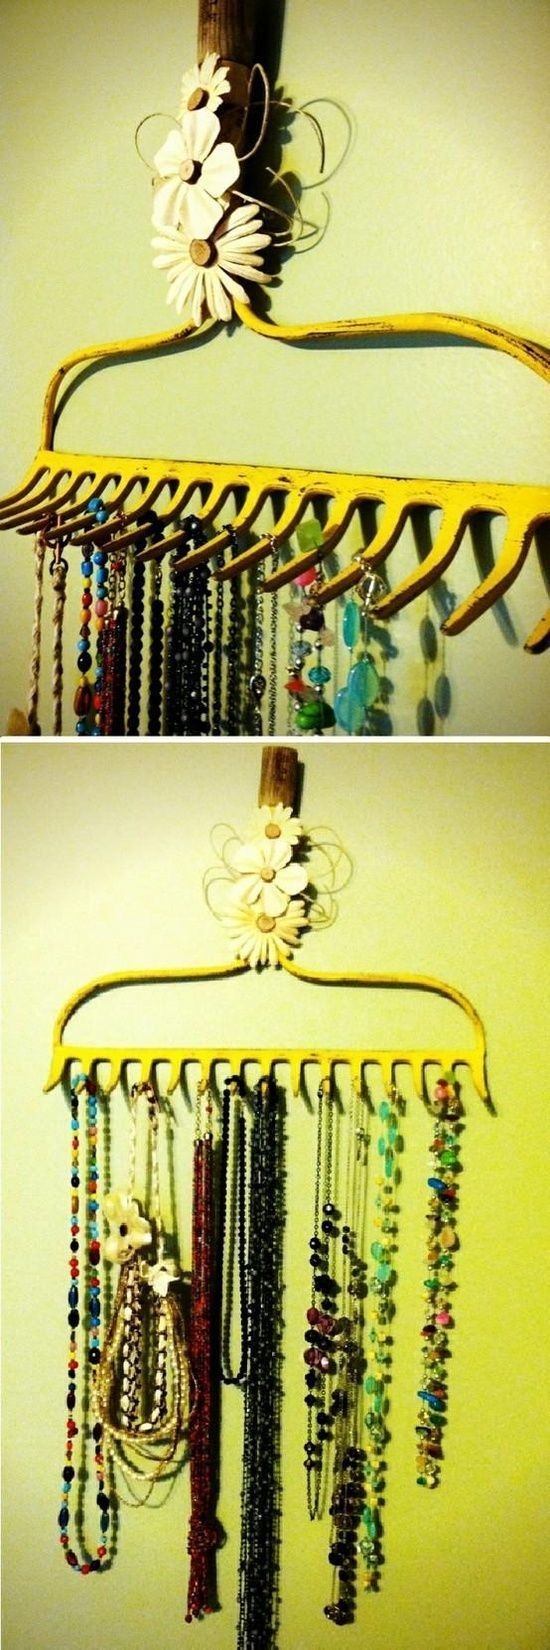 923 best Jewelry organizor images on Pinterest | Jewelry ...